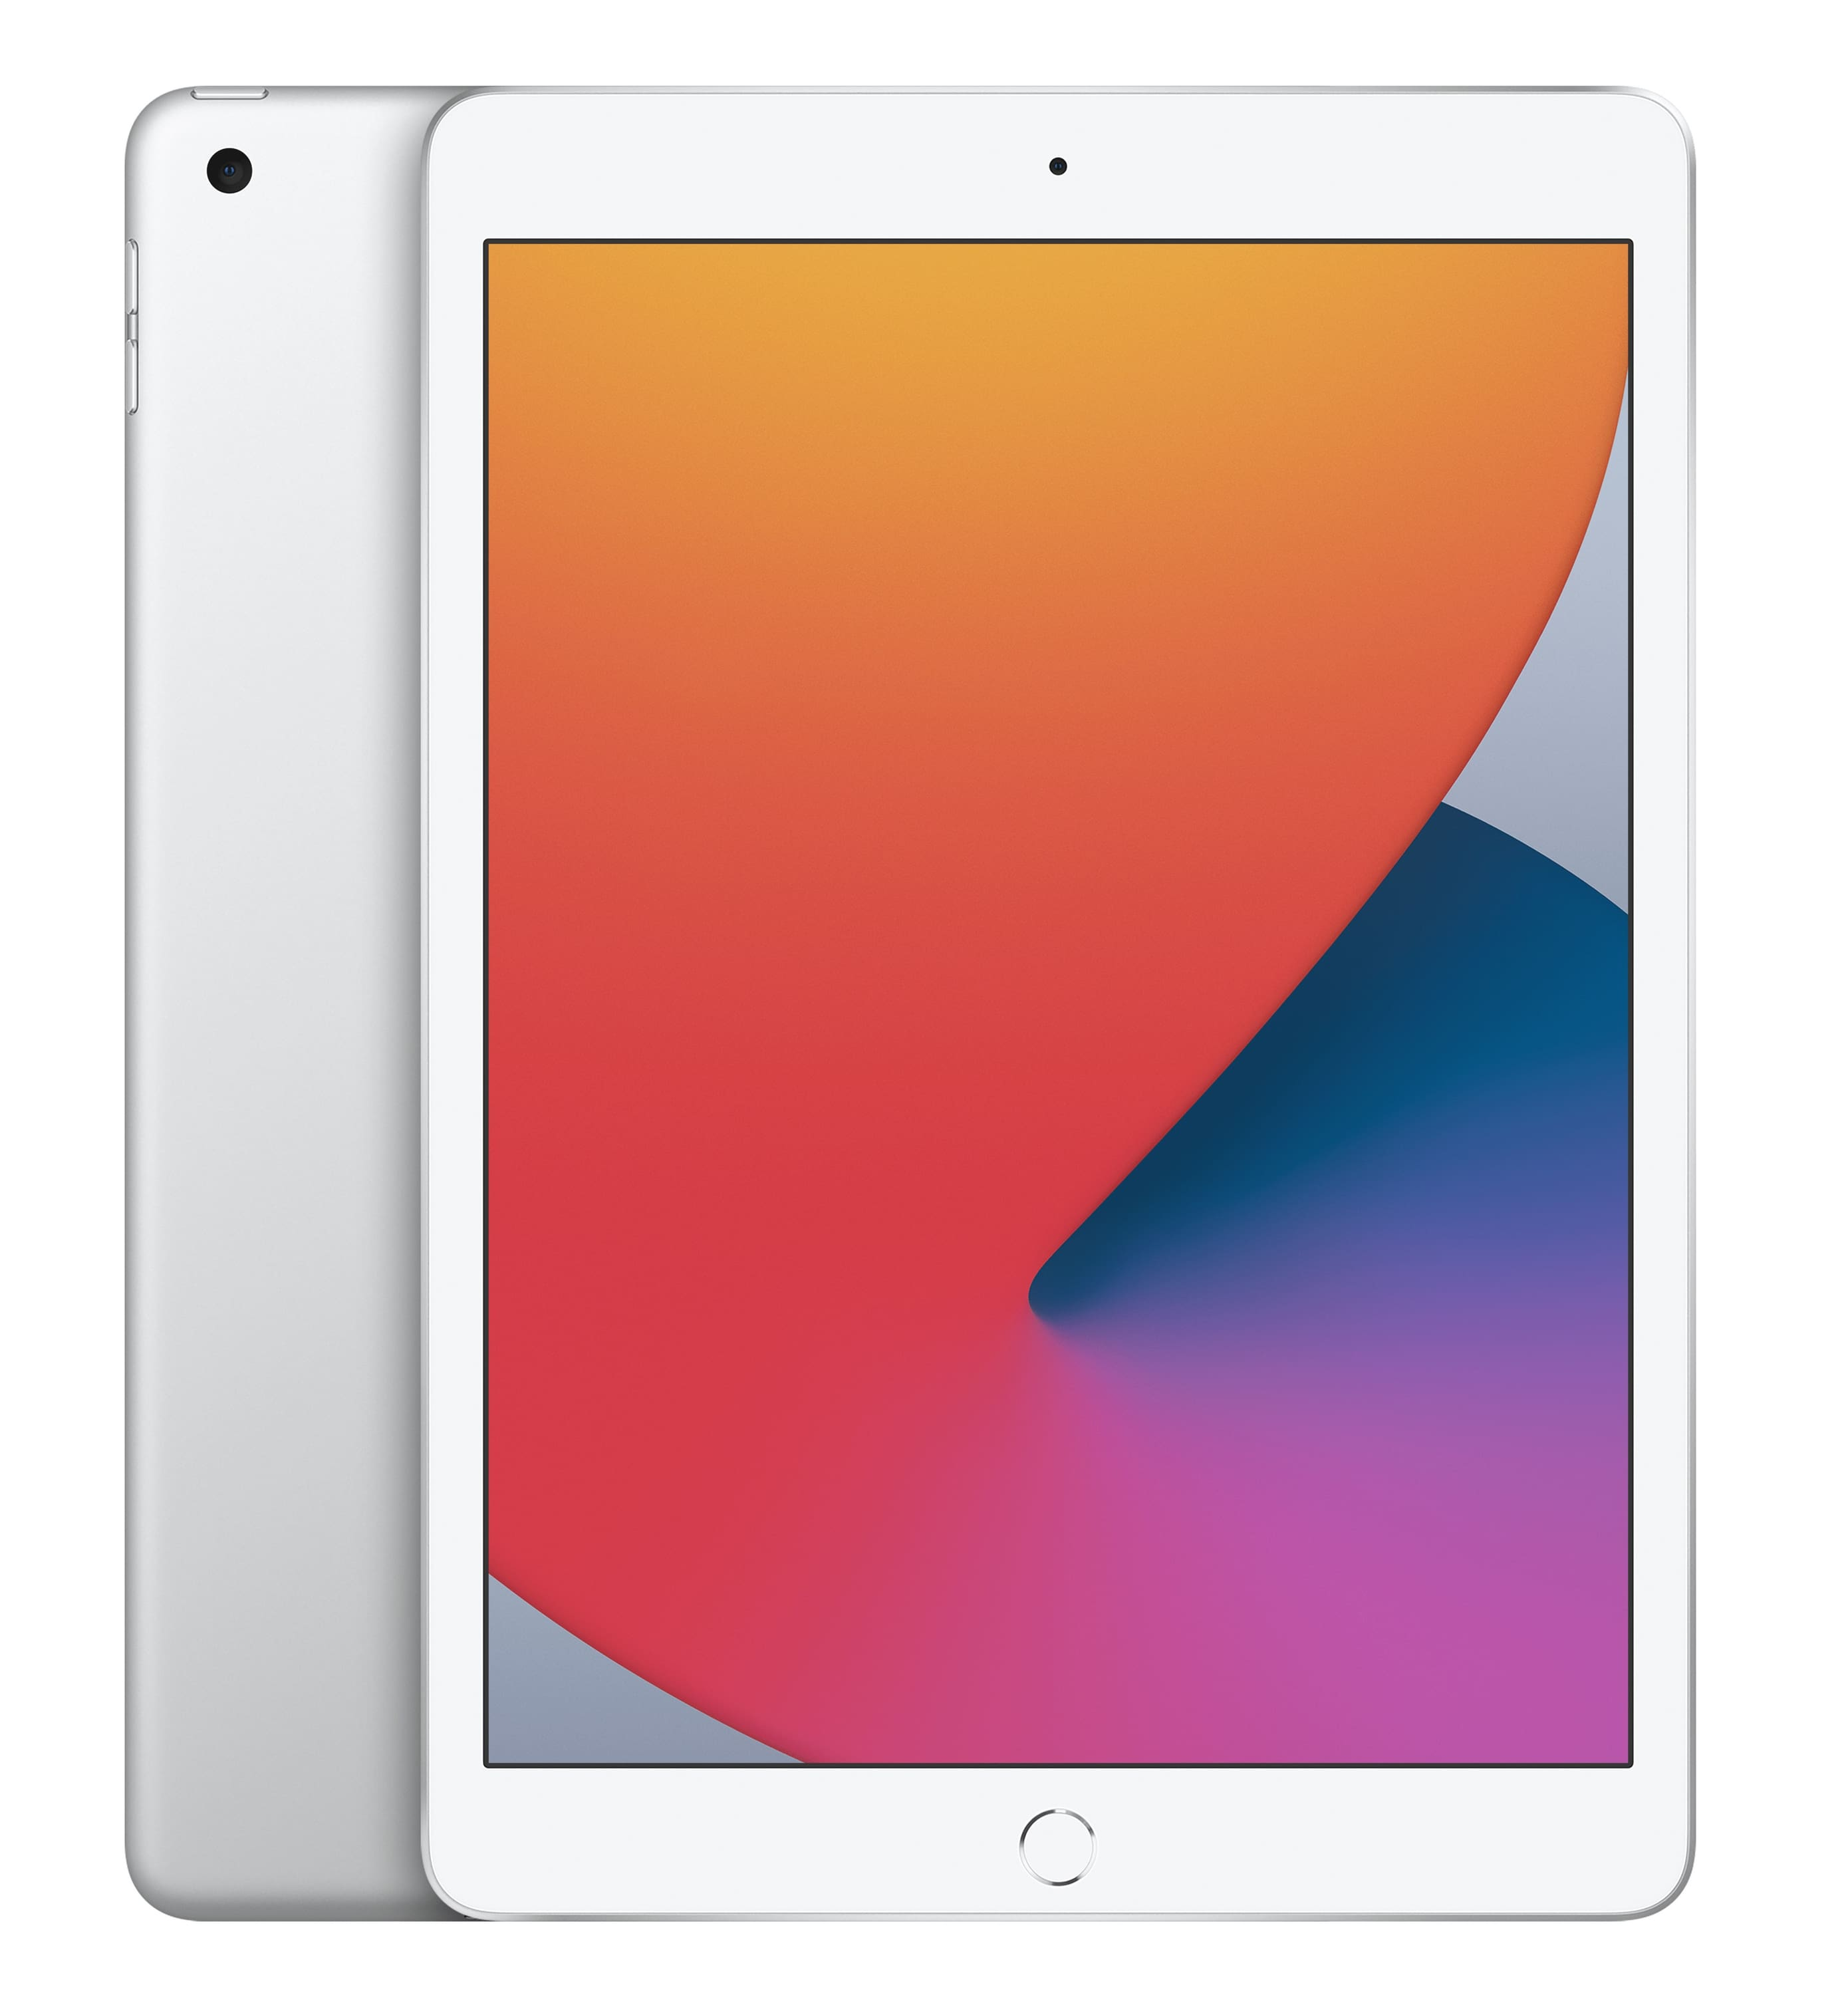 Apple iPad 128 GB Tablet 25,9 cm (10.2 Zoll) iPadOS 8 MP für 479,00 Euro